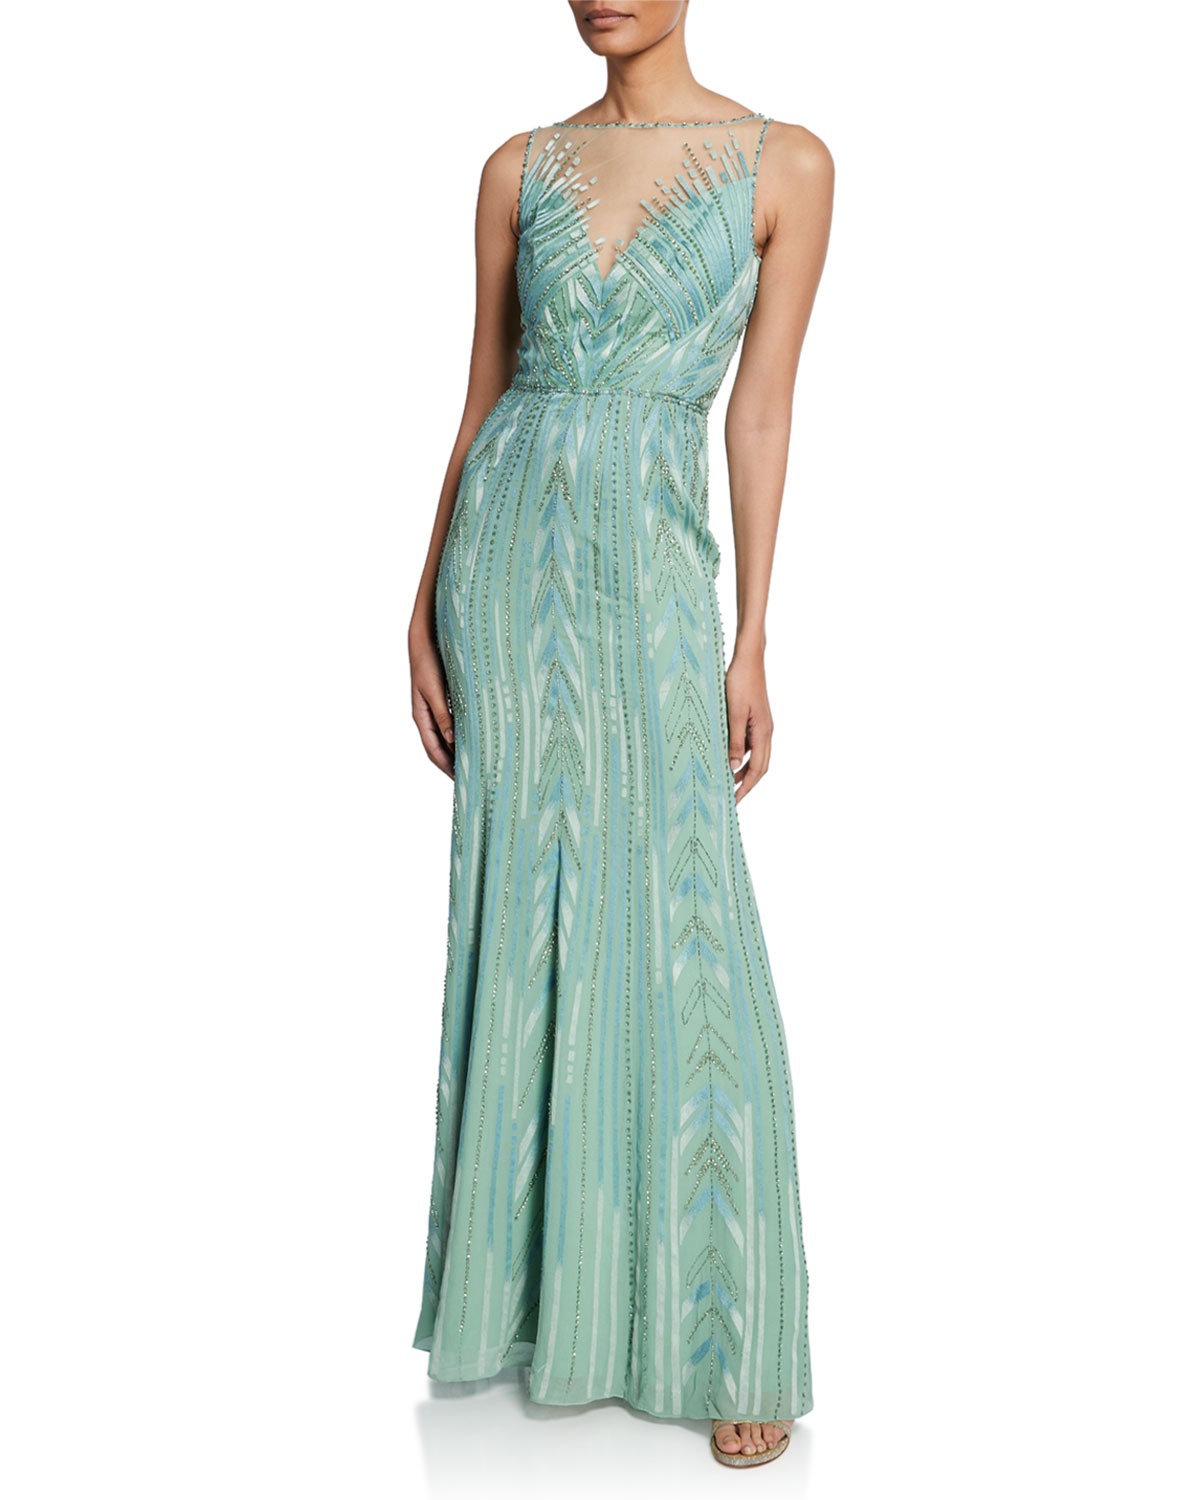 Jenny Packham Tops BACALL BEADED GEOMETRIC SLEEVELESS COLUMN GOWN